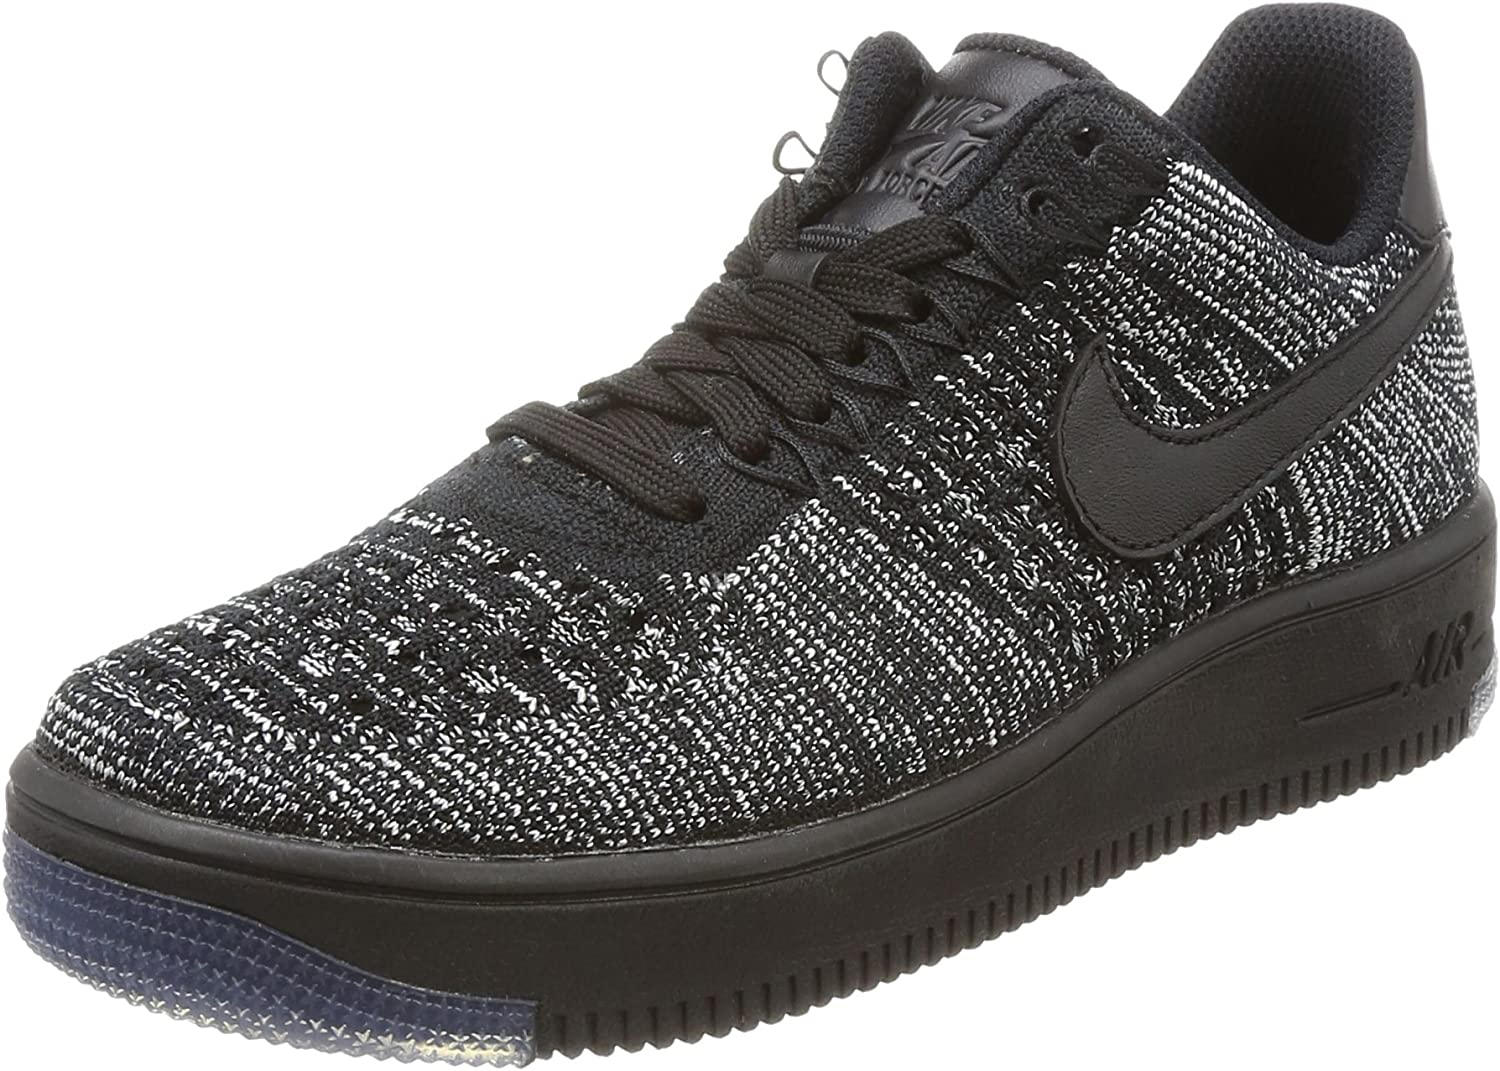 Blog | Nike Air Force 1 Flyknit Low |